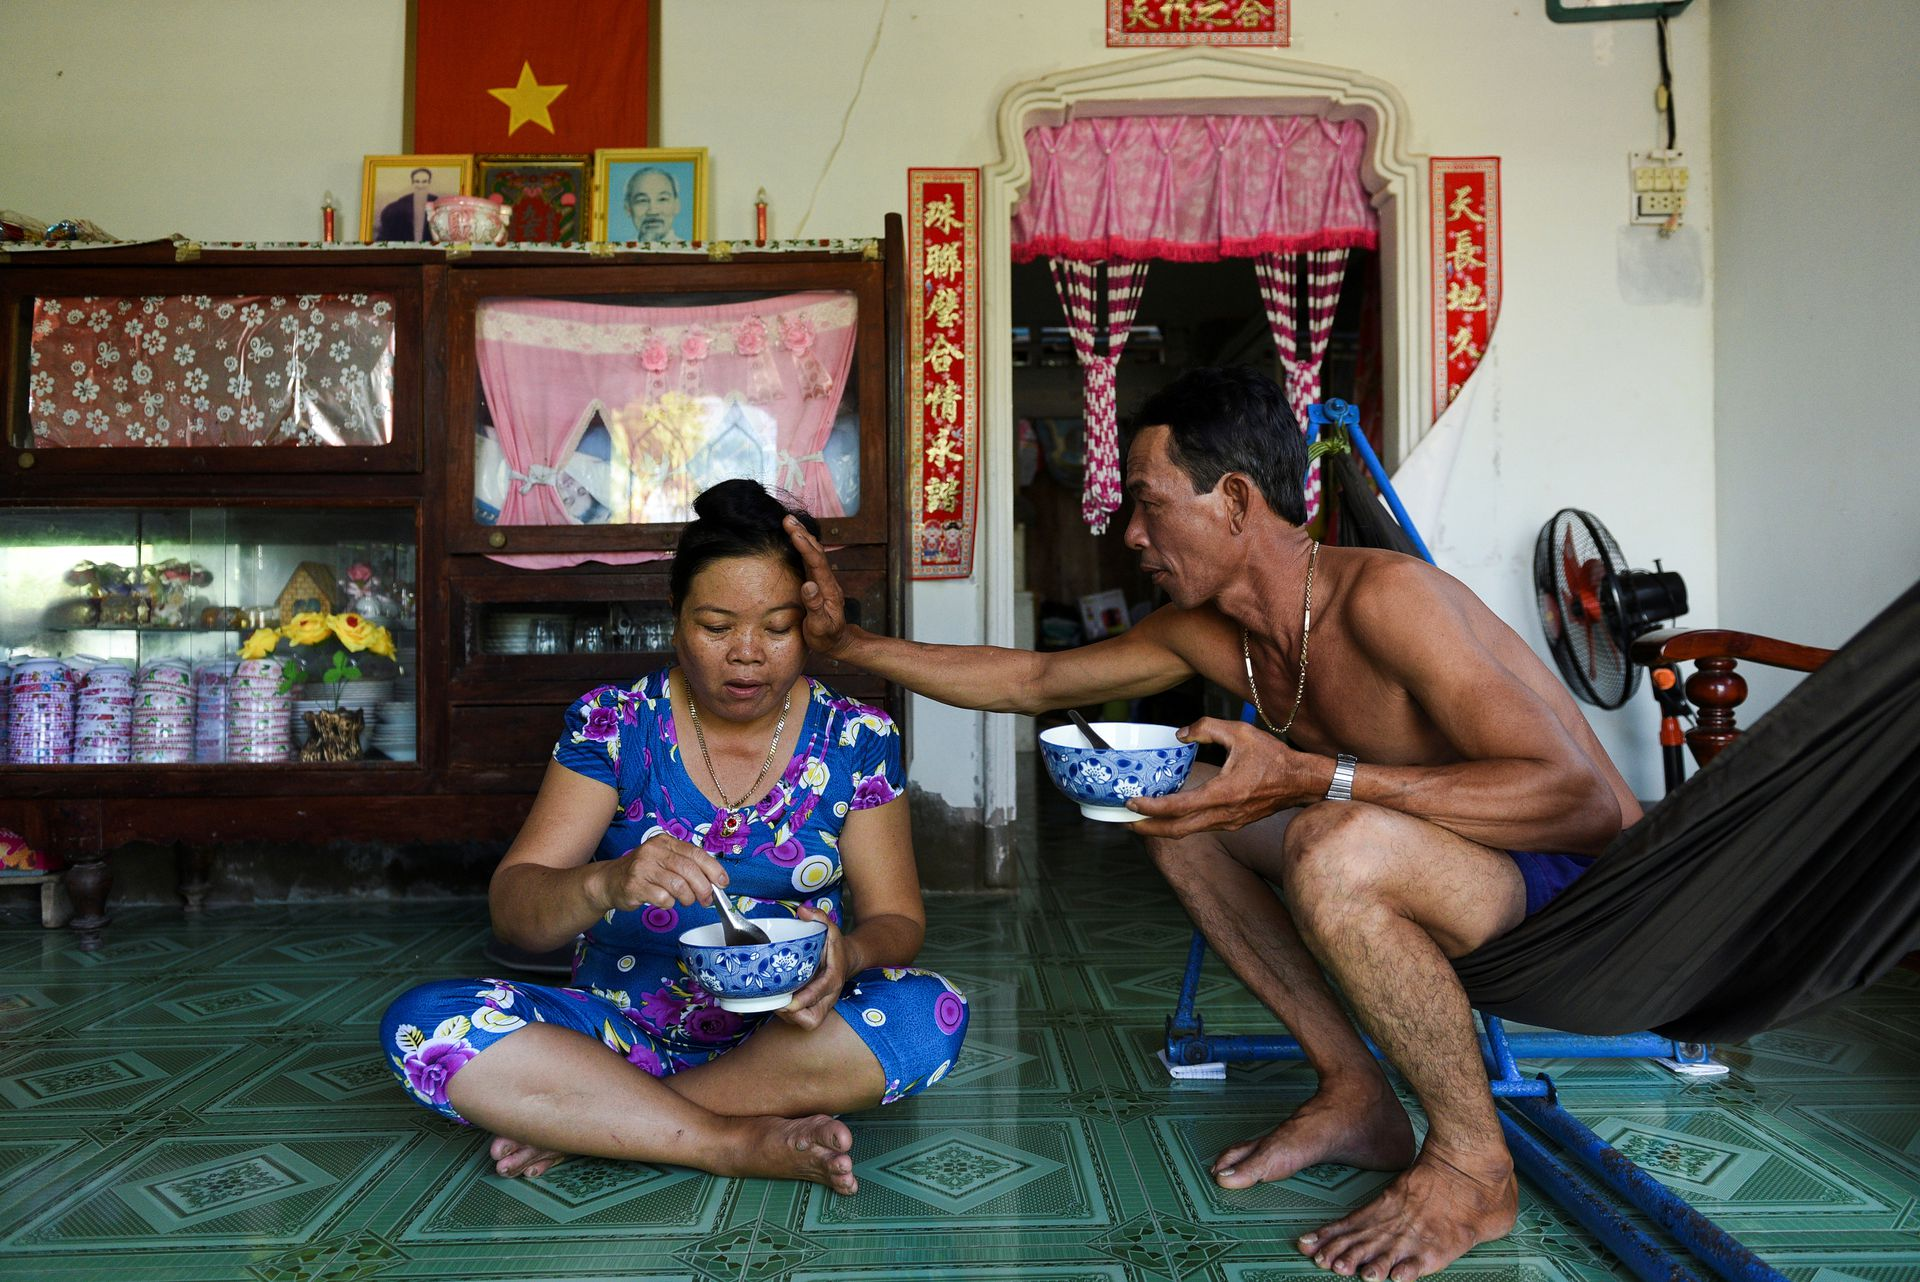 Shrimp farmers Ta Thi Thanh Thuy and her husband Tran Ngoc Giau have lunch at her house in Soc Trang province, Vietnam, May 1, 2021. Photo by Reuters/Thanh Hue.